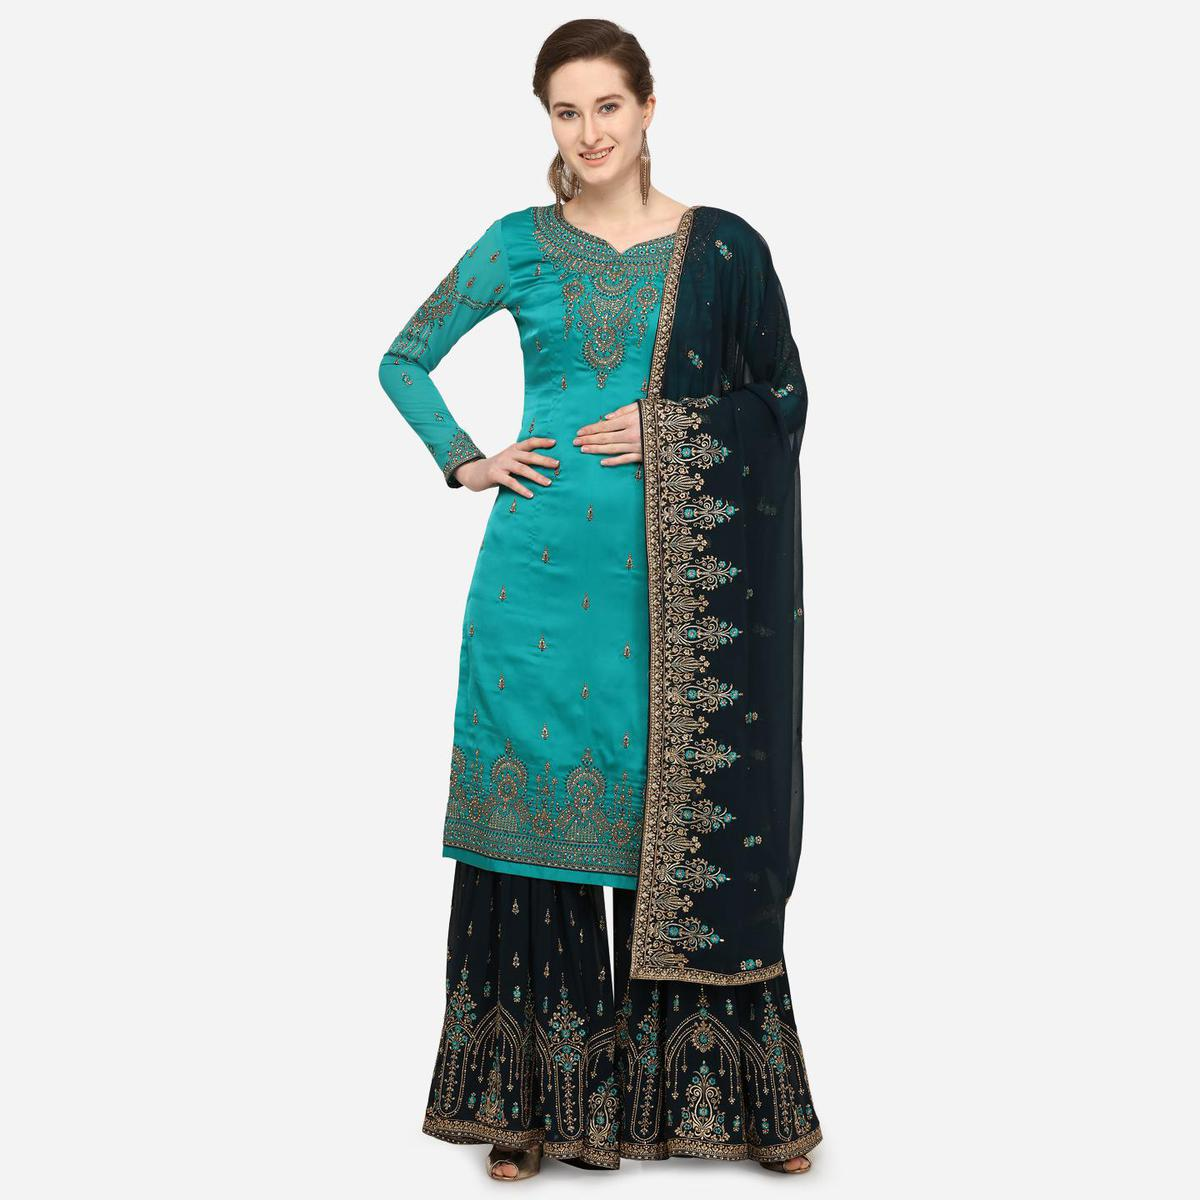 Stylee Lifestyle - Green Colored Party Wear Embroidered Satin Sharara Suit